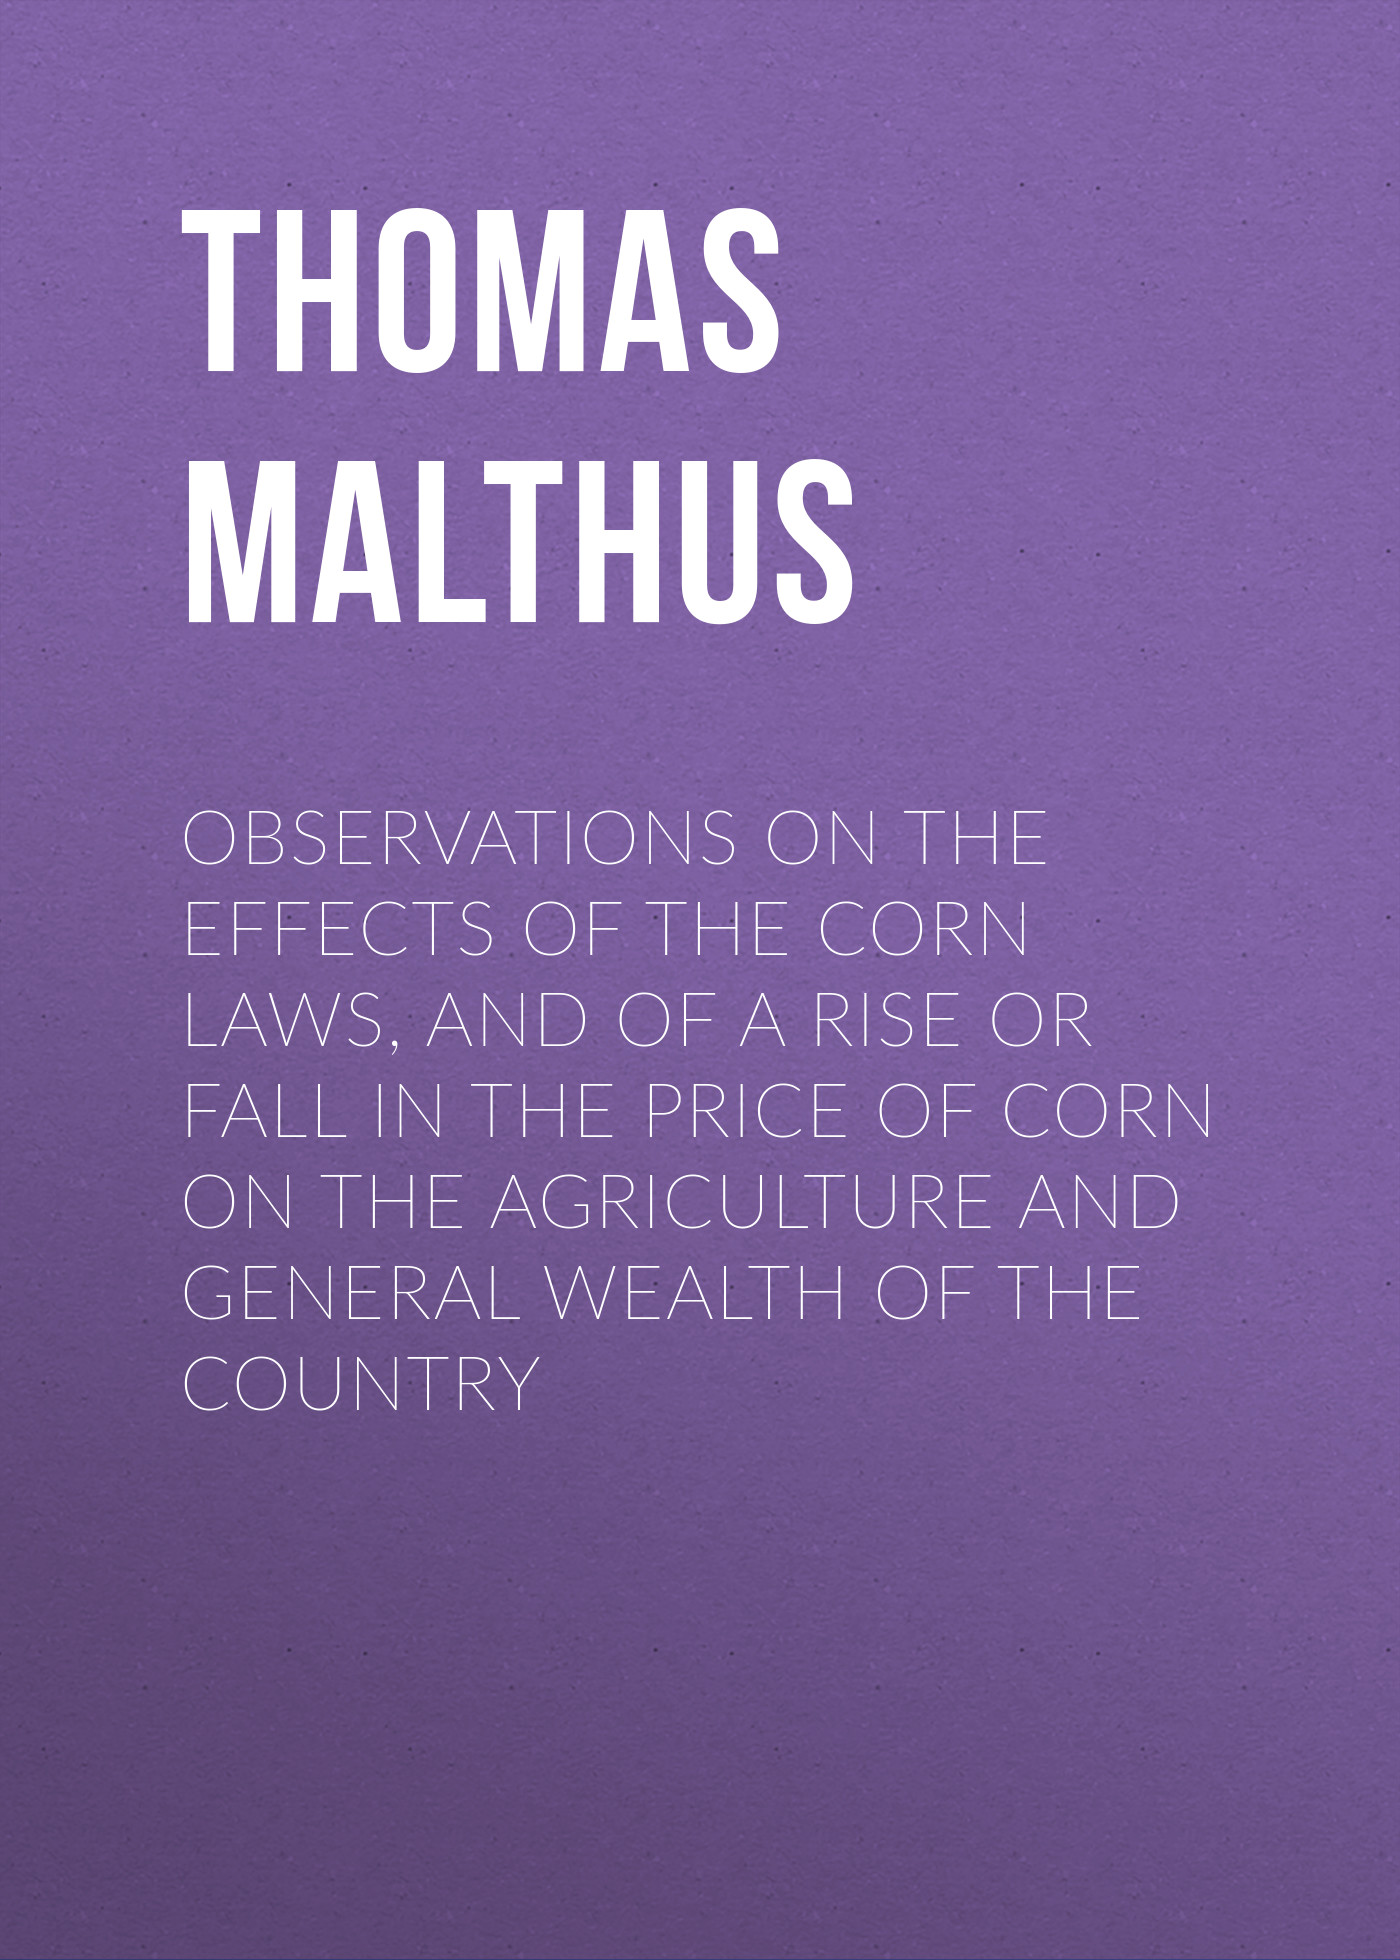 Thomas Malthus Observations on the Effects of the Corn Laws, and of a Rise or Fall in the Price of Corn on the Agriculture and General Wealth of the Country pennsylvania laws of the general assembly of the commonwealth of pennsylvania passed at the session of yr 1855